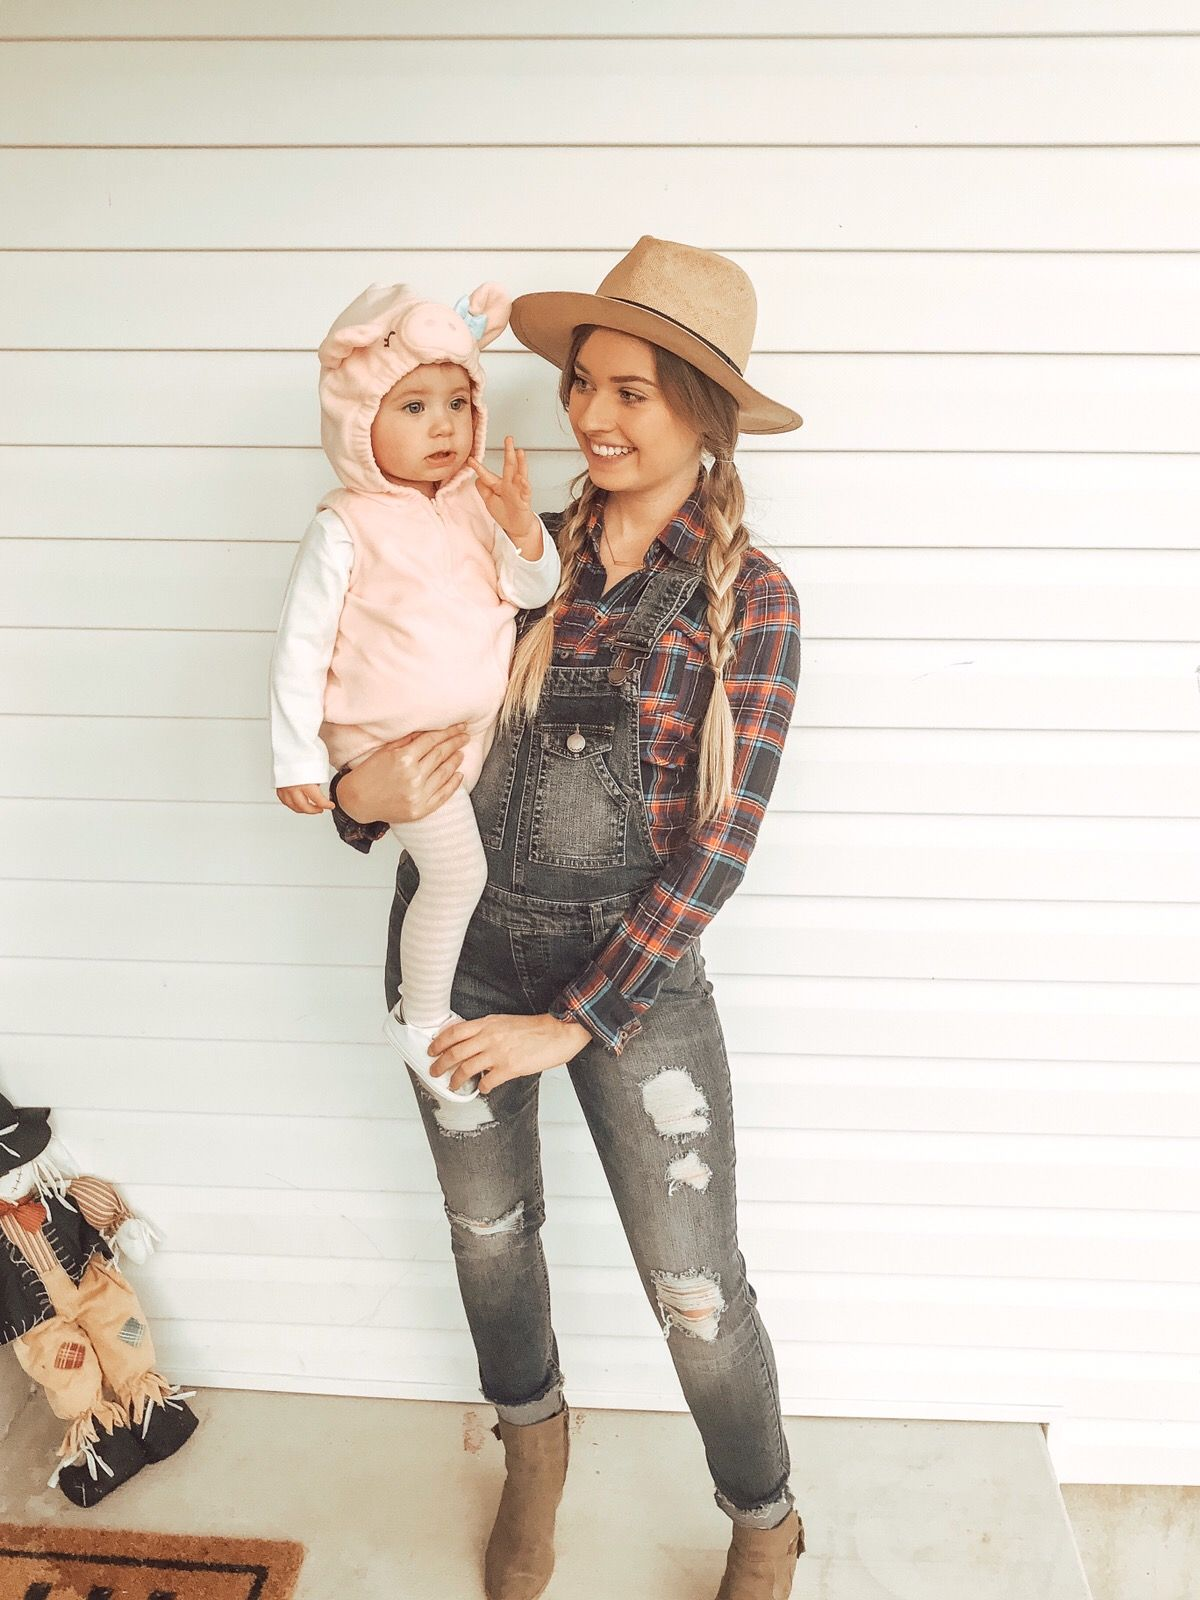 Mother And Baby Halloween Costumes.Mother Daughter Halloween Costume Mommy And Me Costumes Farmer An Daughter Halloween Costumes Mother Daughter Halloween Costumes Baby Girl Halloween Costumes